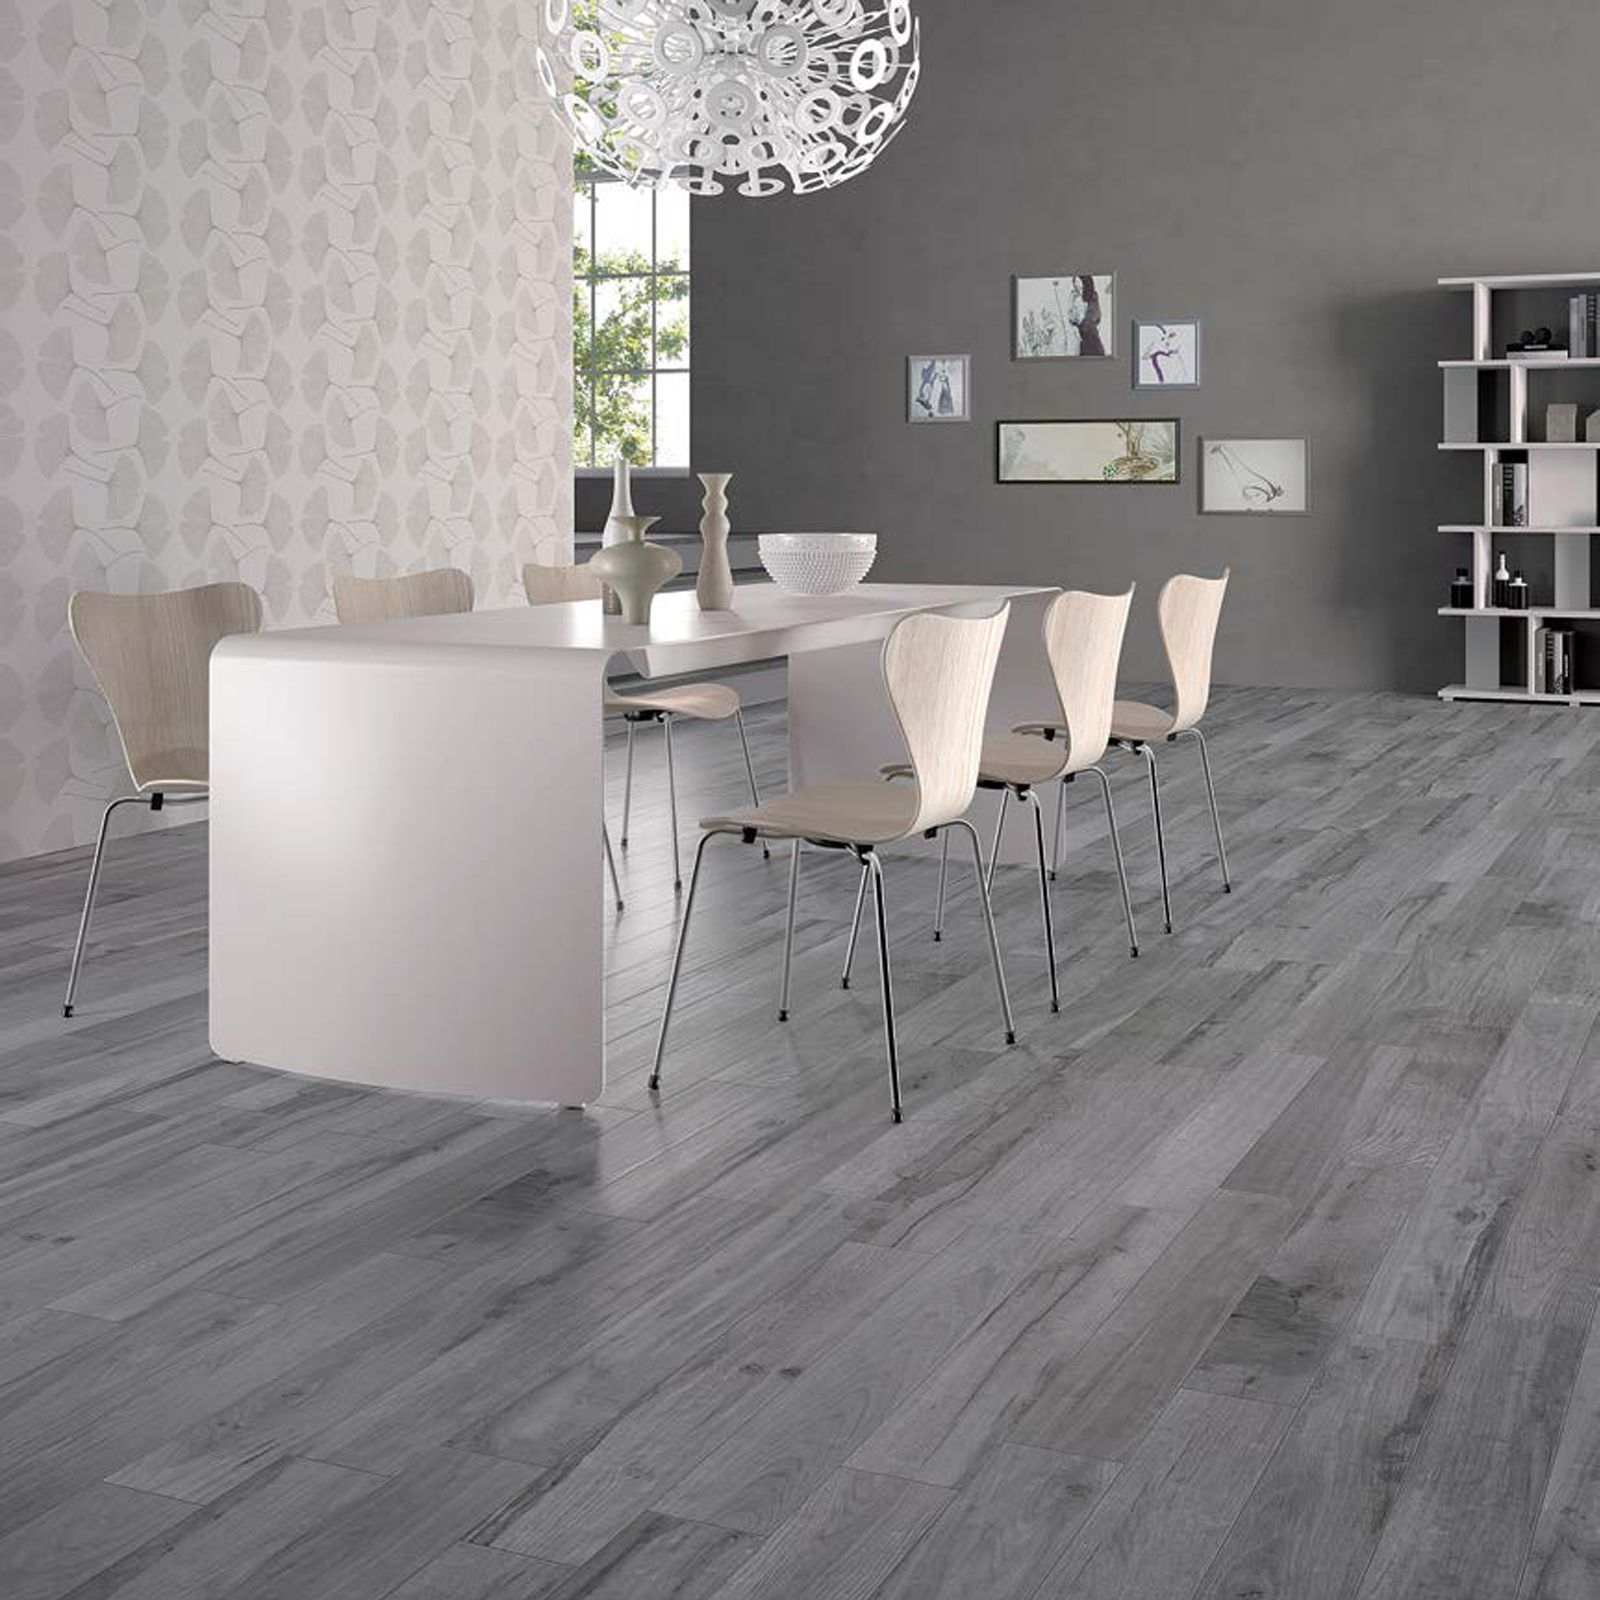 Modern dining area with tiles from Soleras collection by